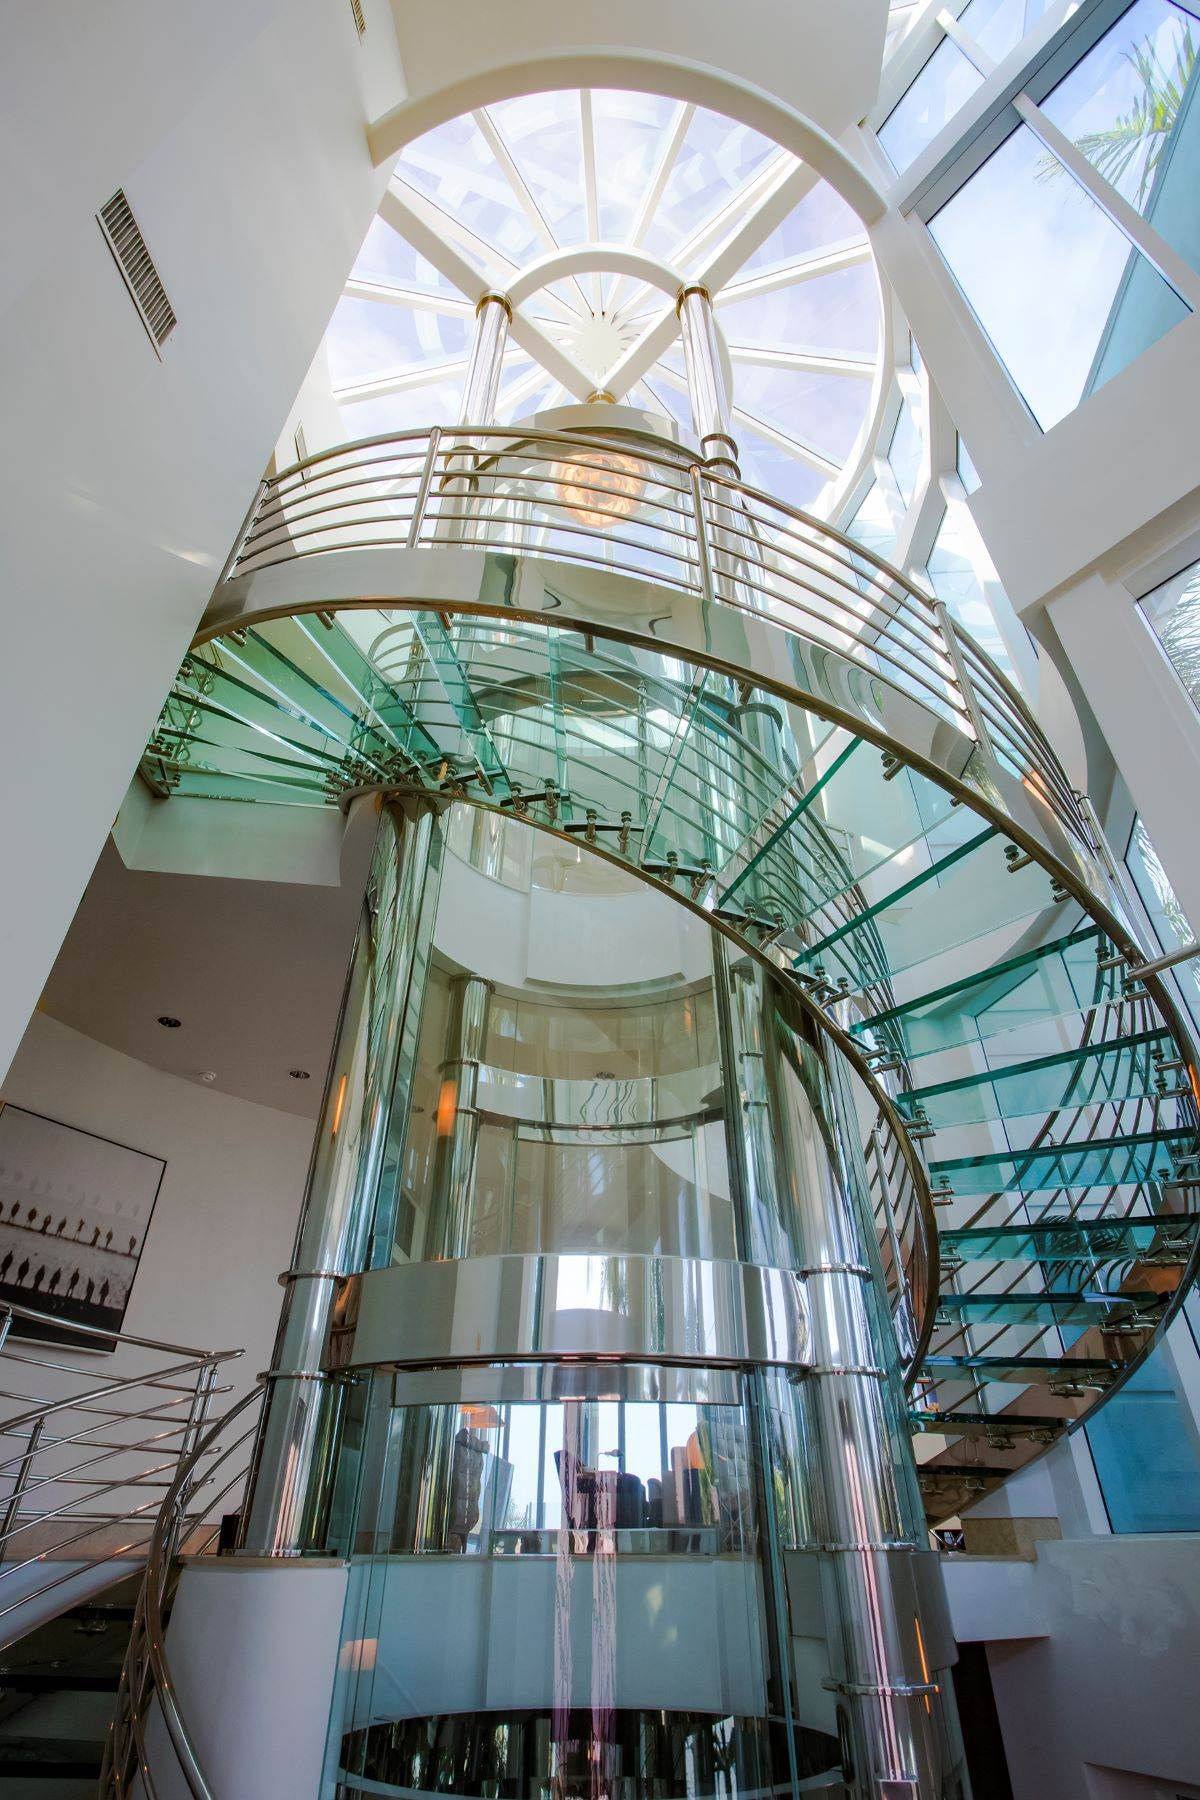 Florida beach pad with round glass elevator for $6M ... Inside The White House Bedrooms 2017